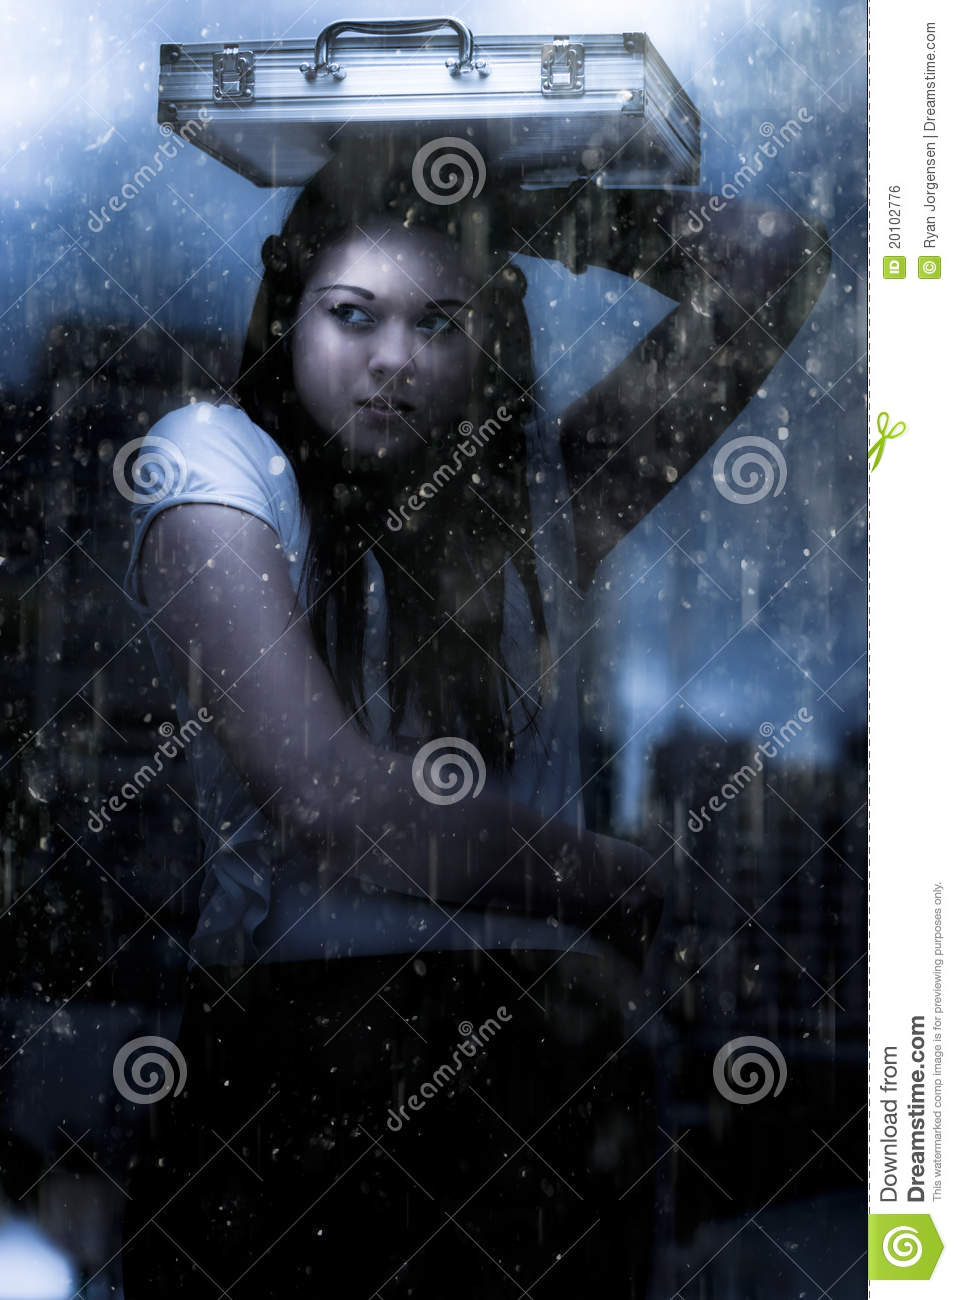 Business Woman Caught In Rain And Bad Weather Stock Photo ...